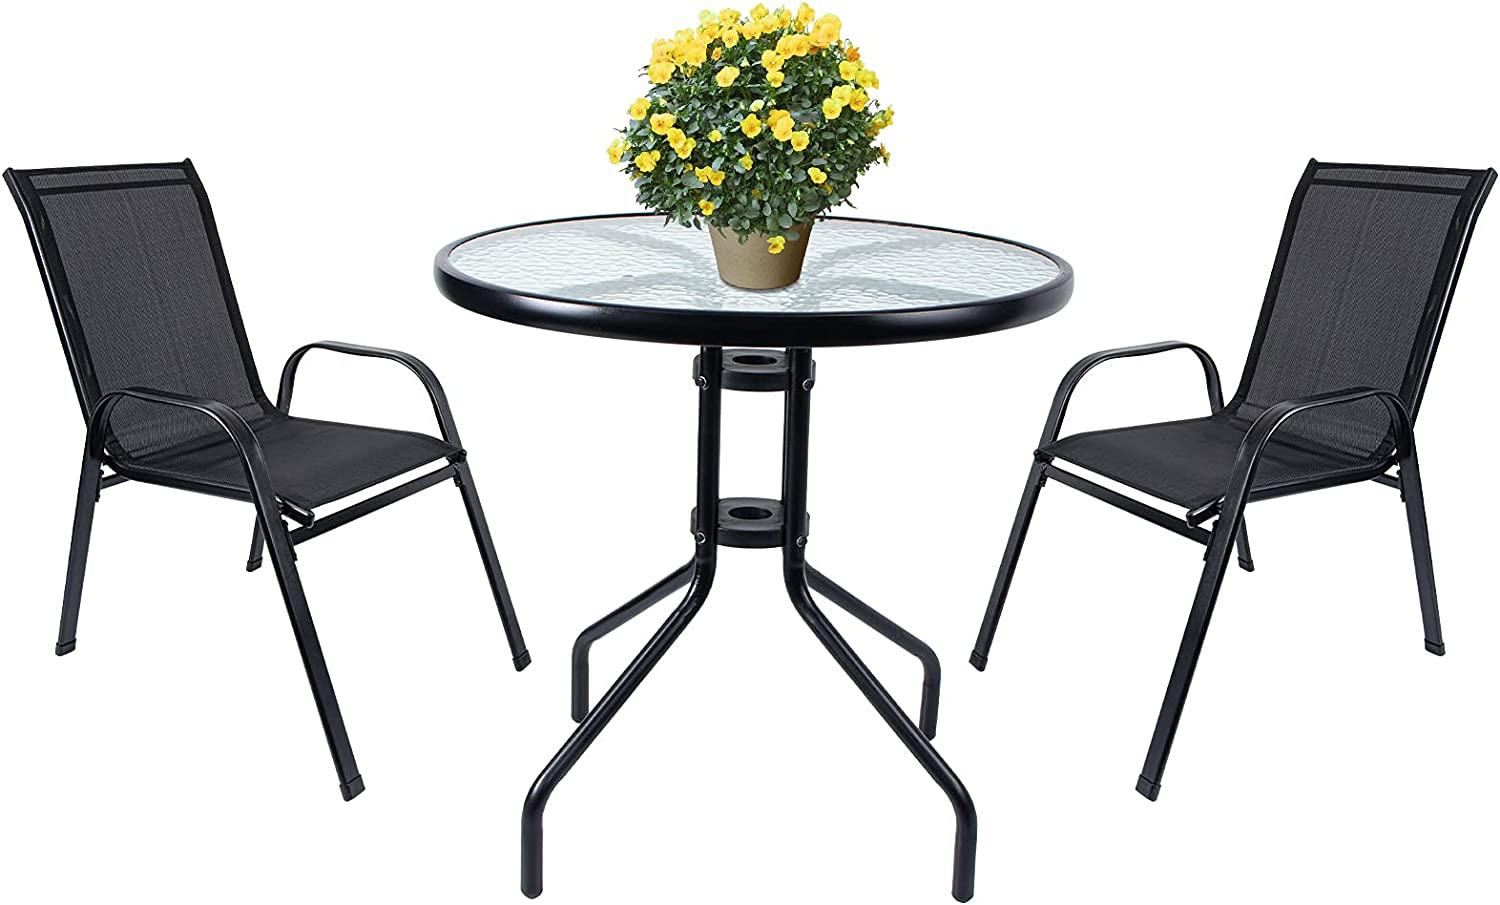 Vipush Patio Bistro Set,3 Piece Outdoor Patio Furniture Set,Patio Table and Chairs Indoor Conversation Set for Backyard Porch Poolside Lawn,Black